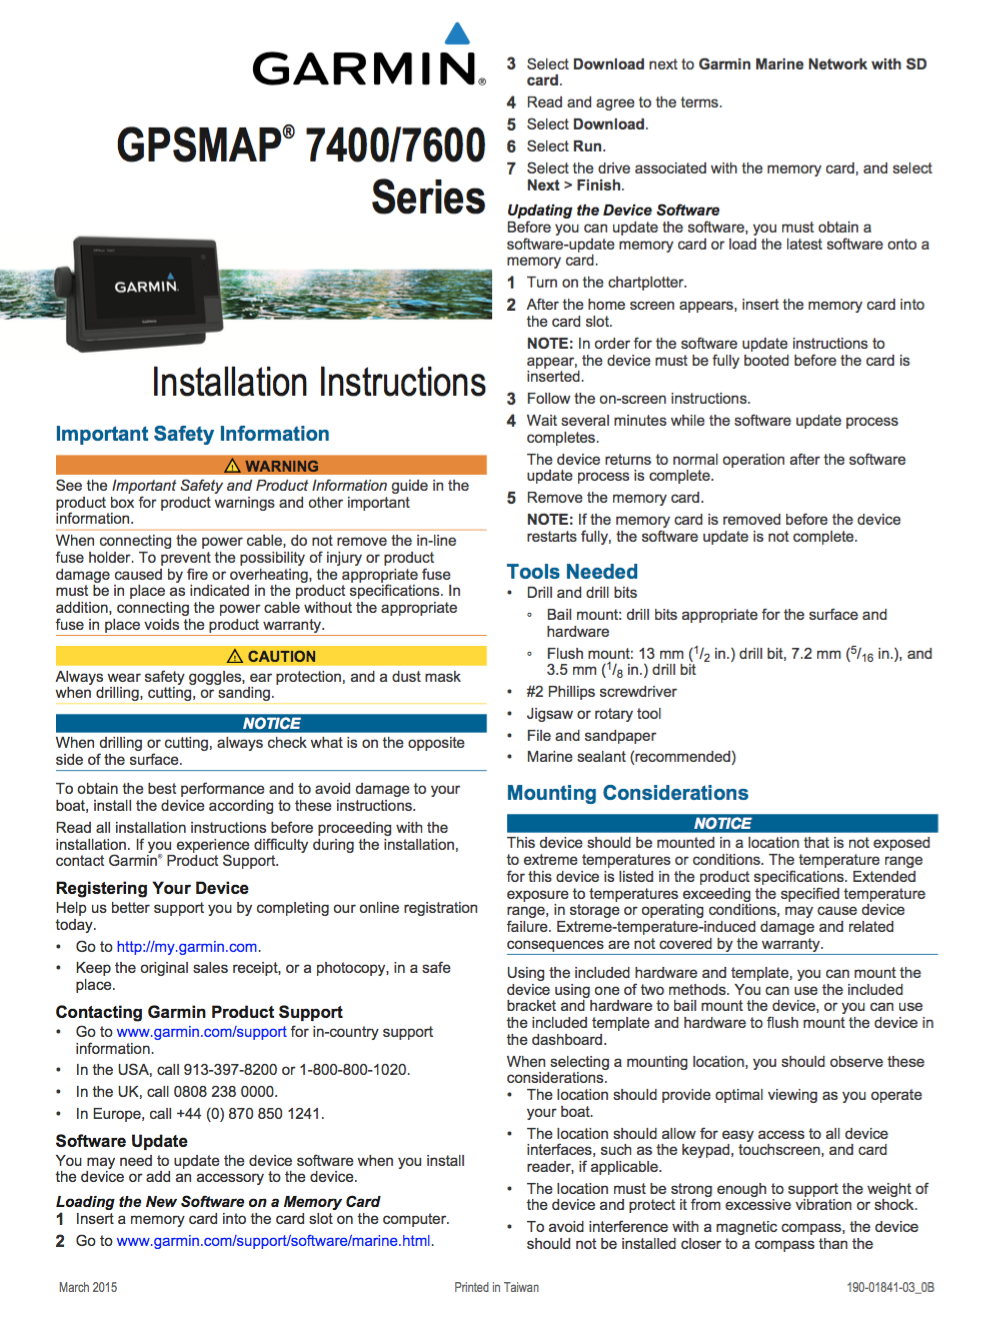 gpsmap 7400 7600 installation instructions